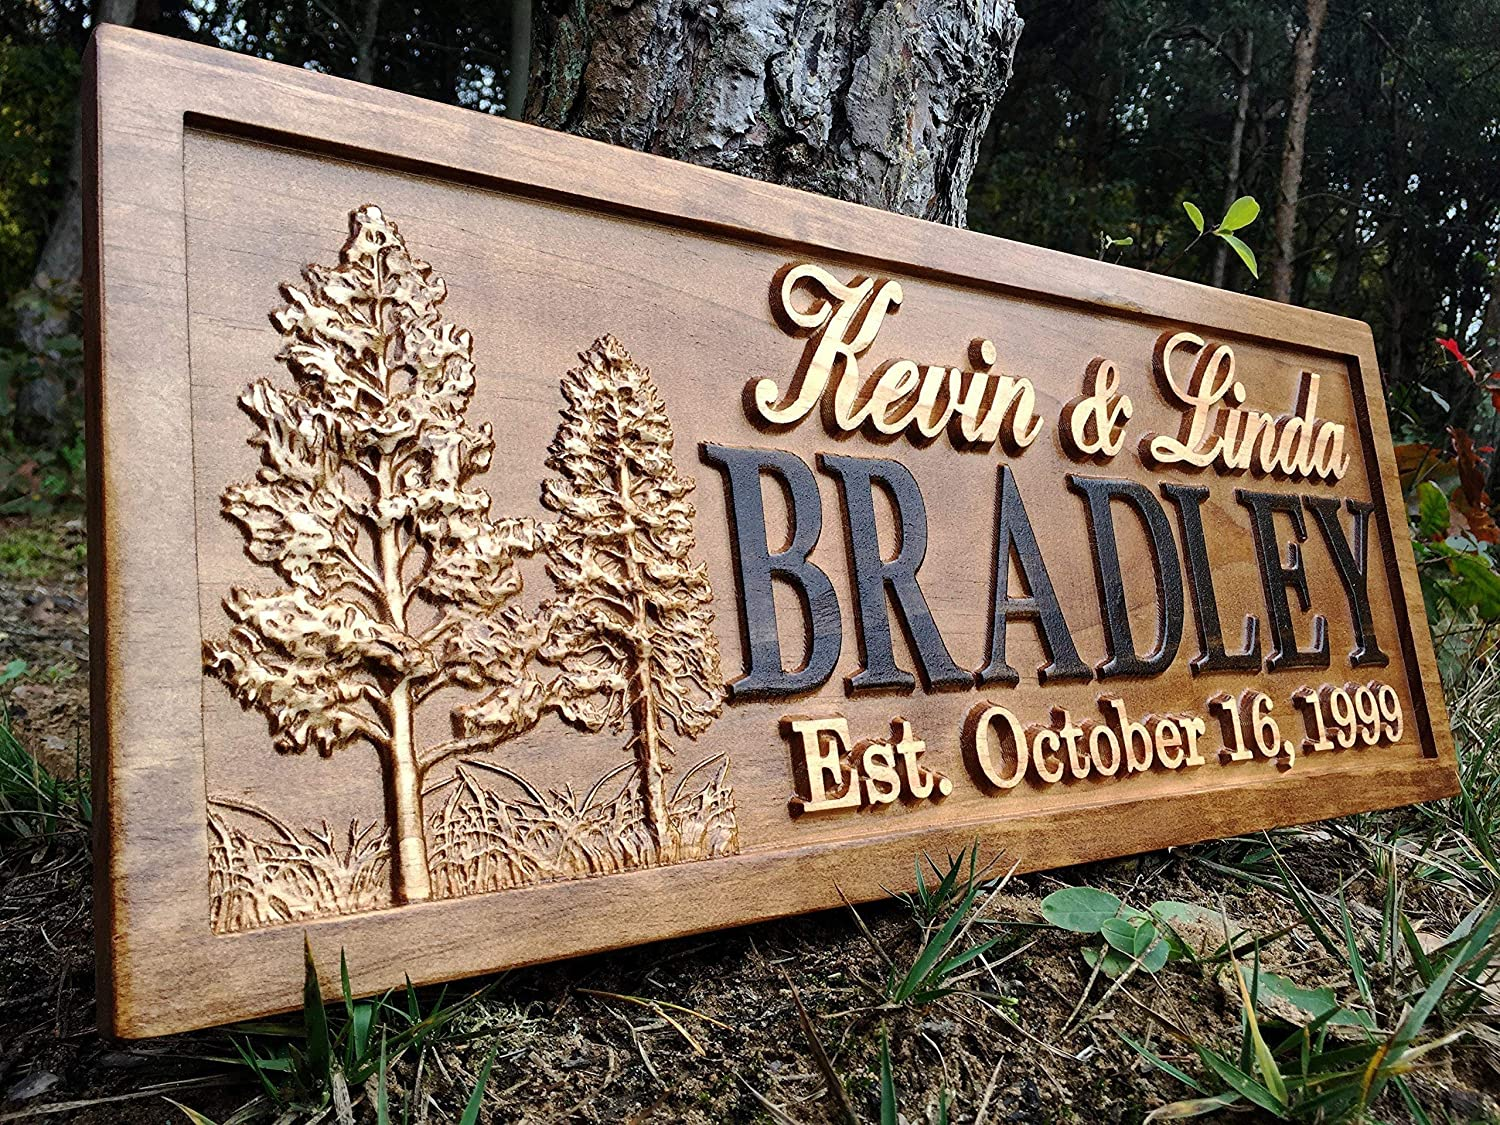 Rustic Wedding Signs.Rustic Wedding Signs Wood Wall Art Personalized Couples Gift Ideas Family Last Name Custom Name Sign Lakehouse Hunting Lodge Home Decor Tree Carved